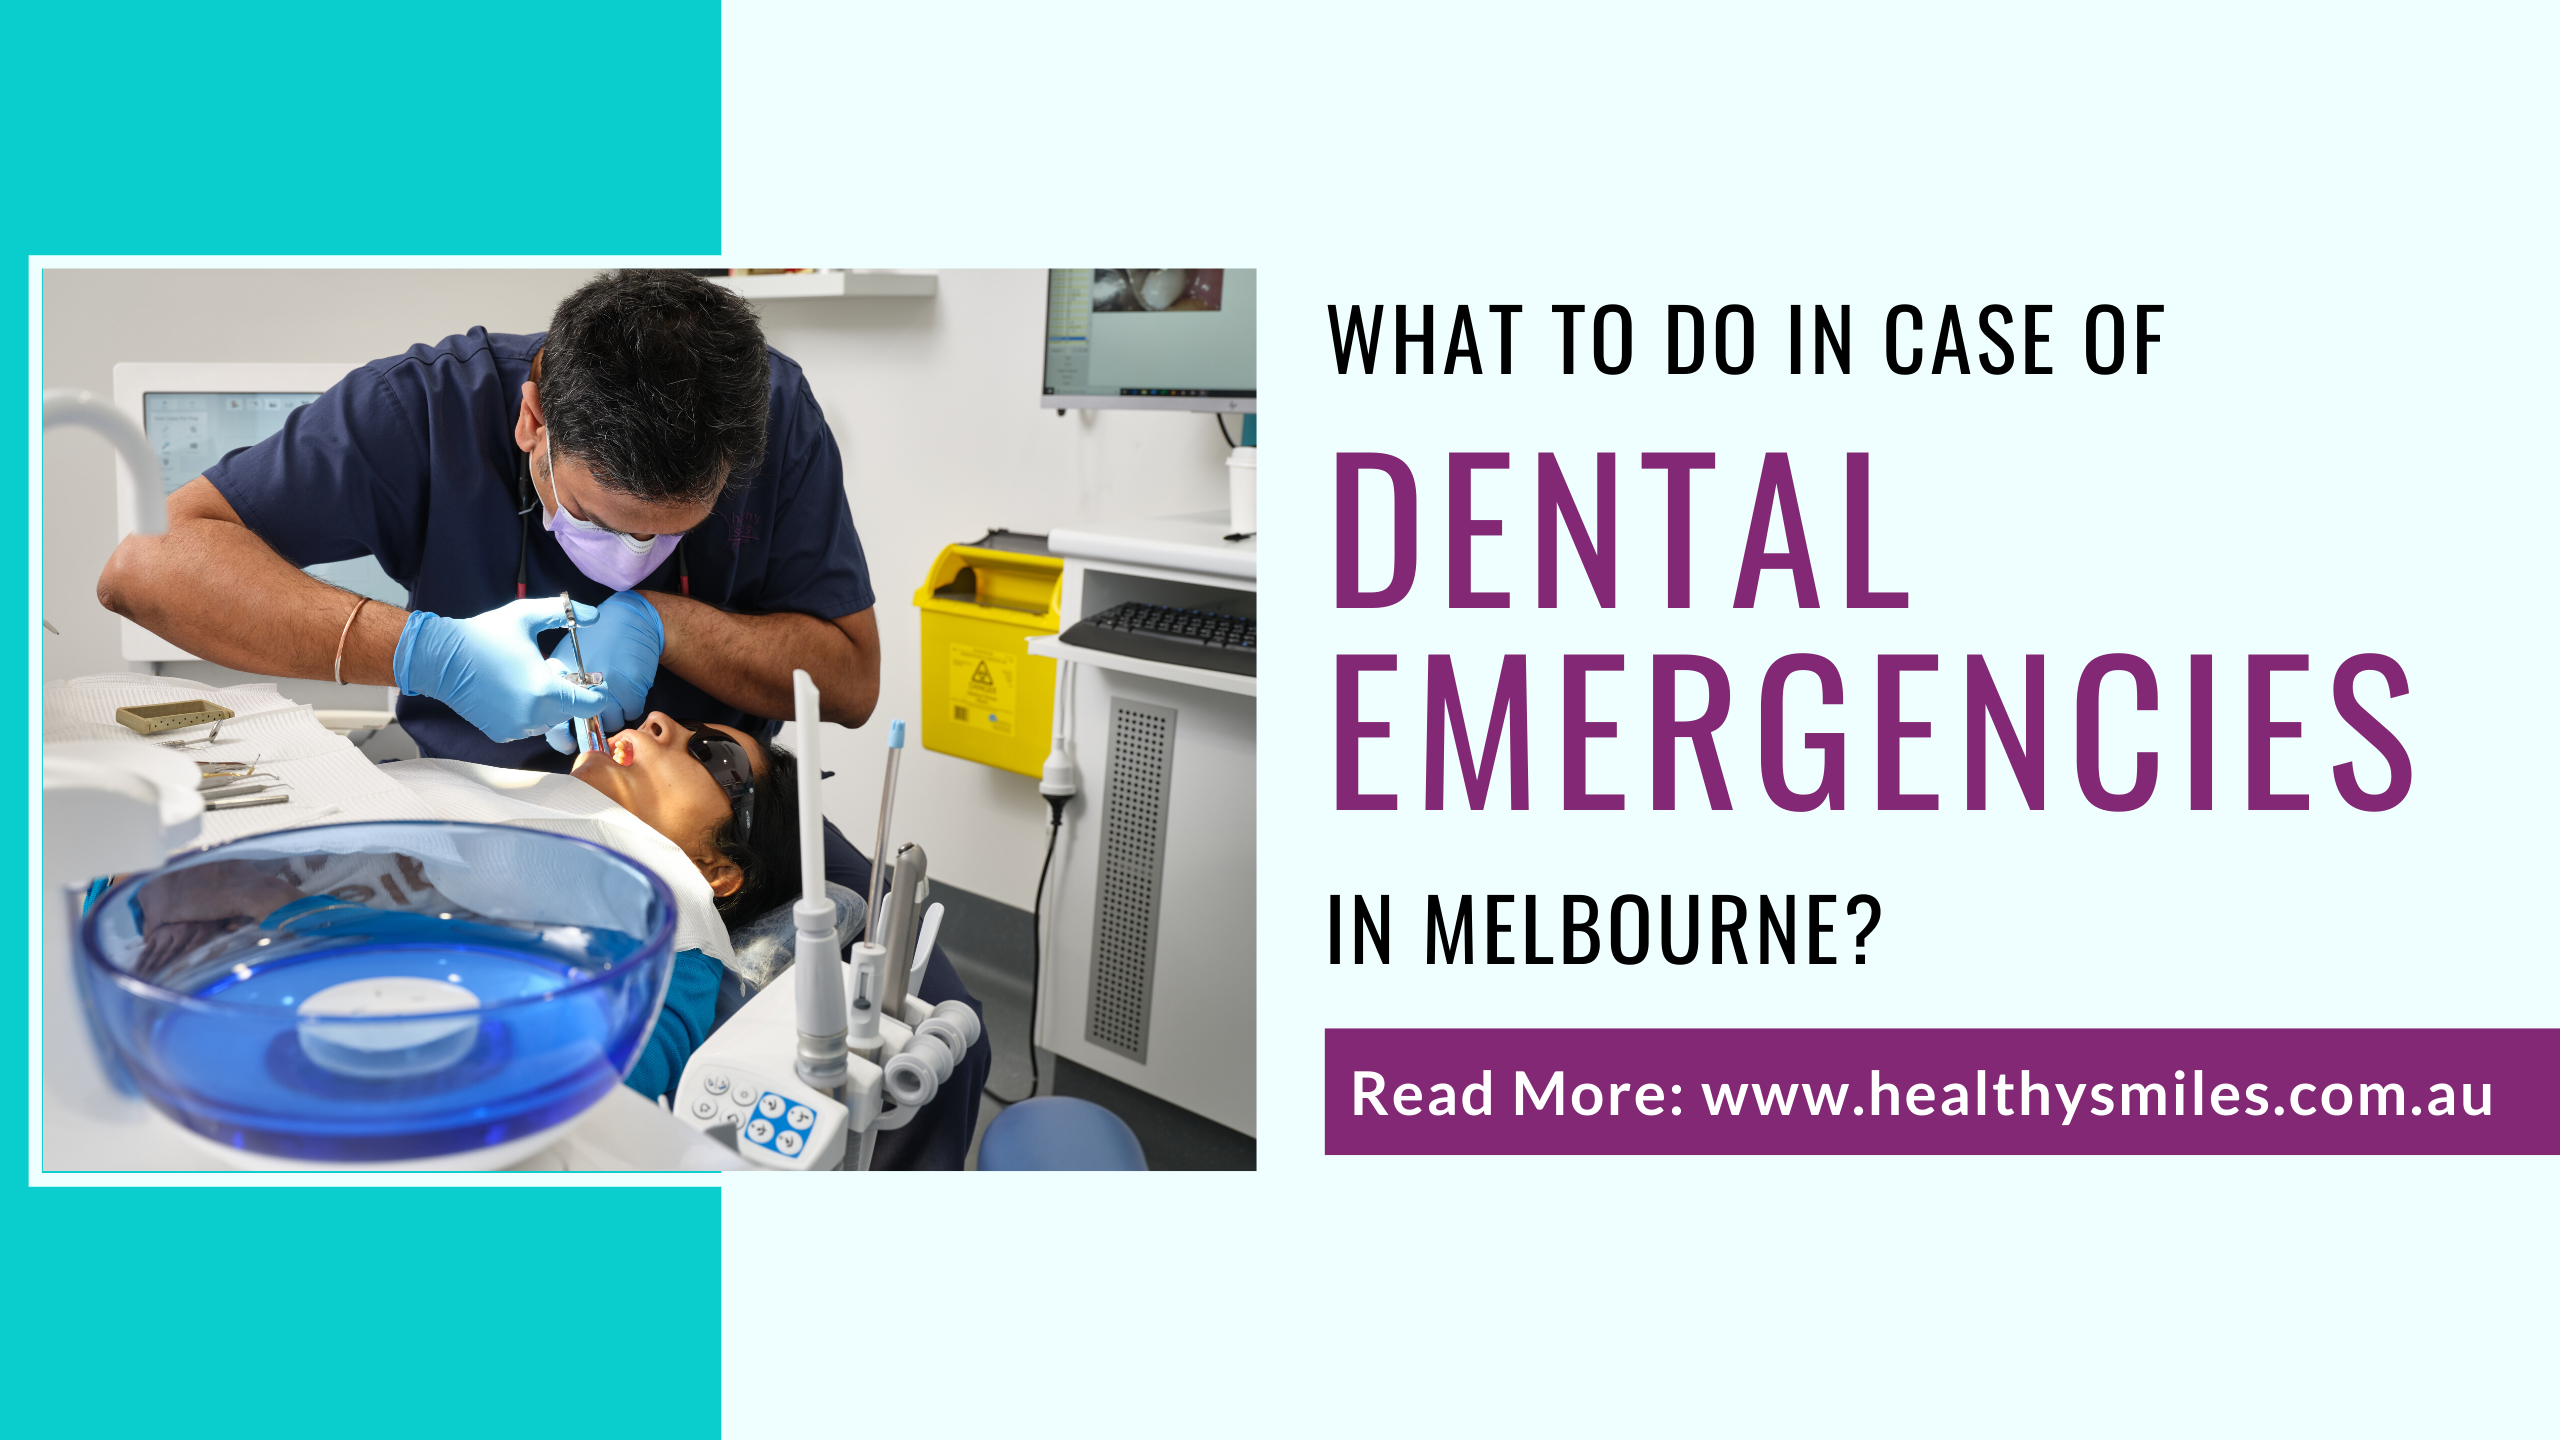 What to do in Case of Dental Emergencies